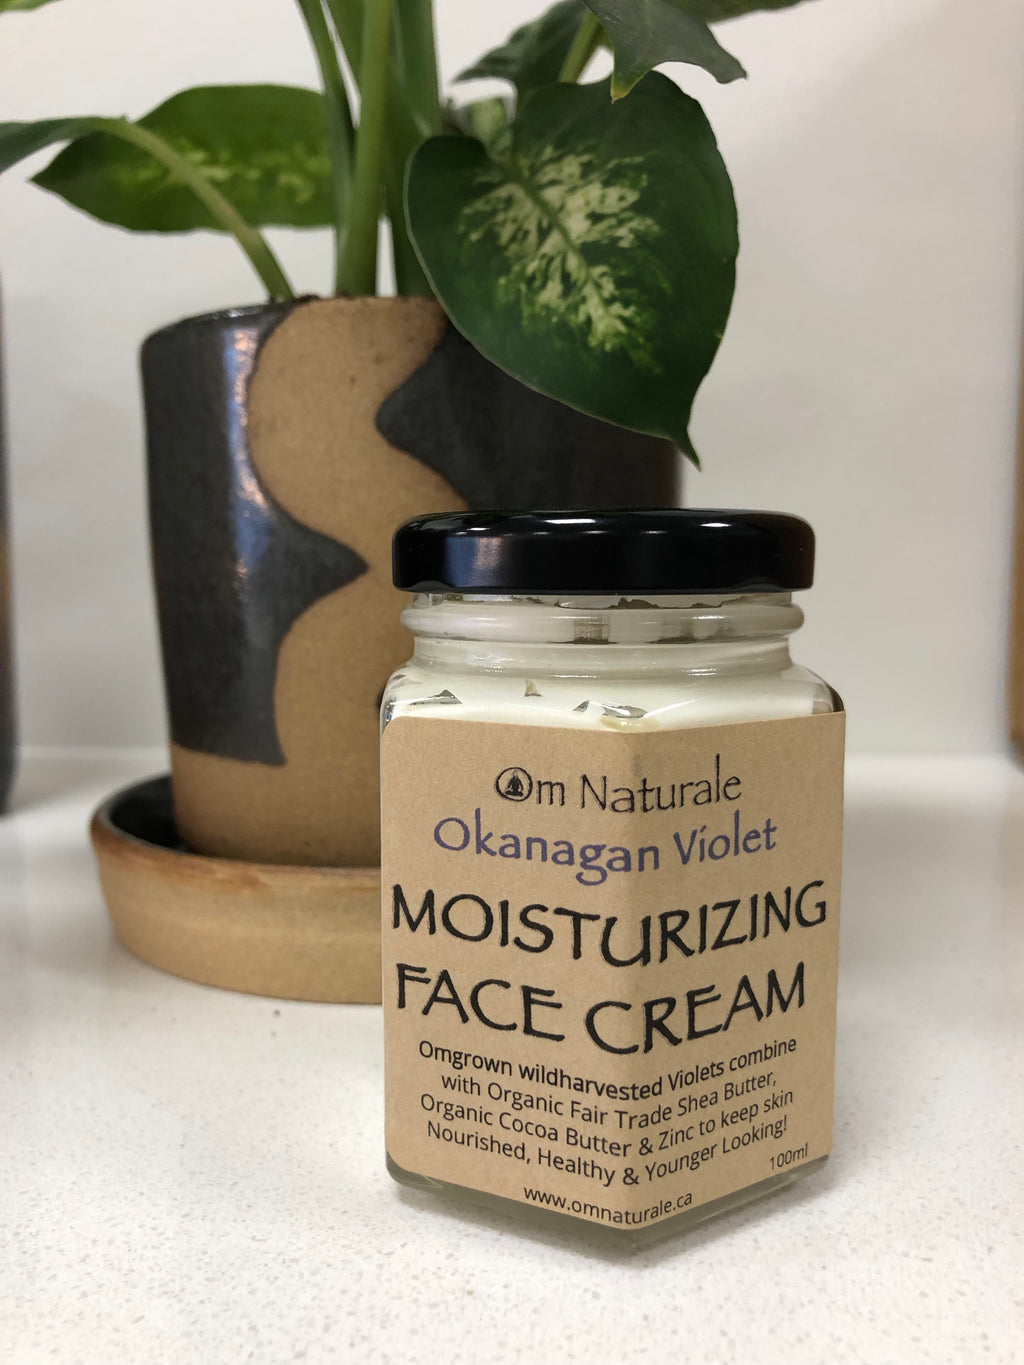 Om Naturale Moisturizing Face Cream